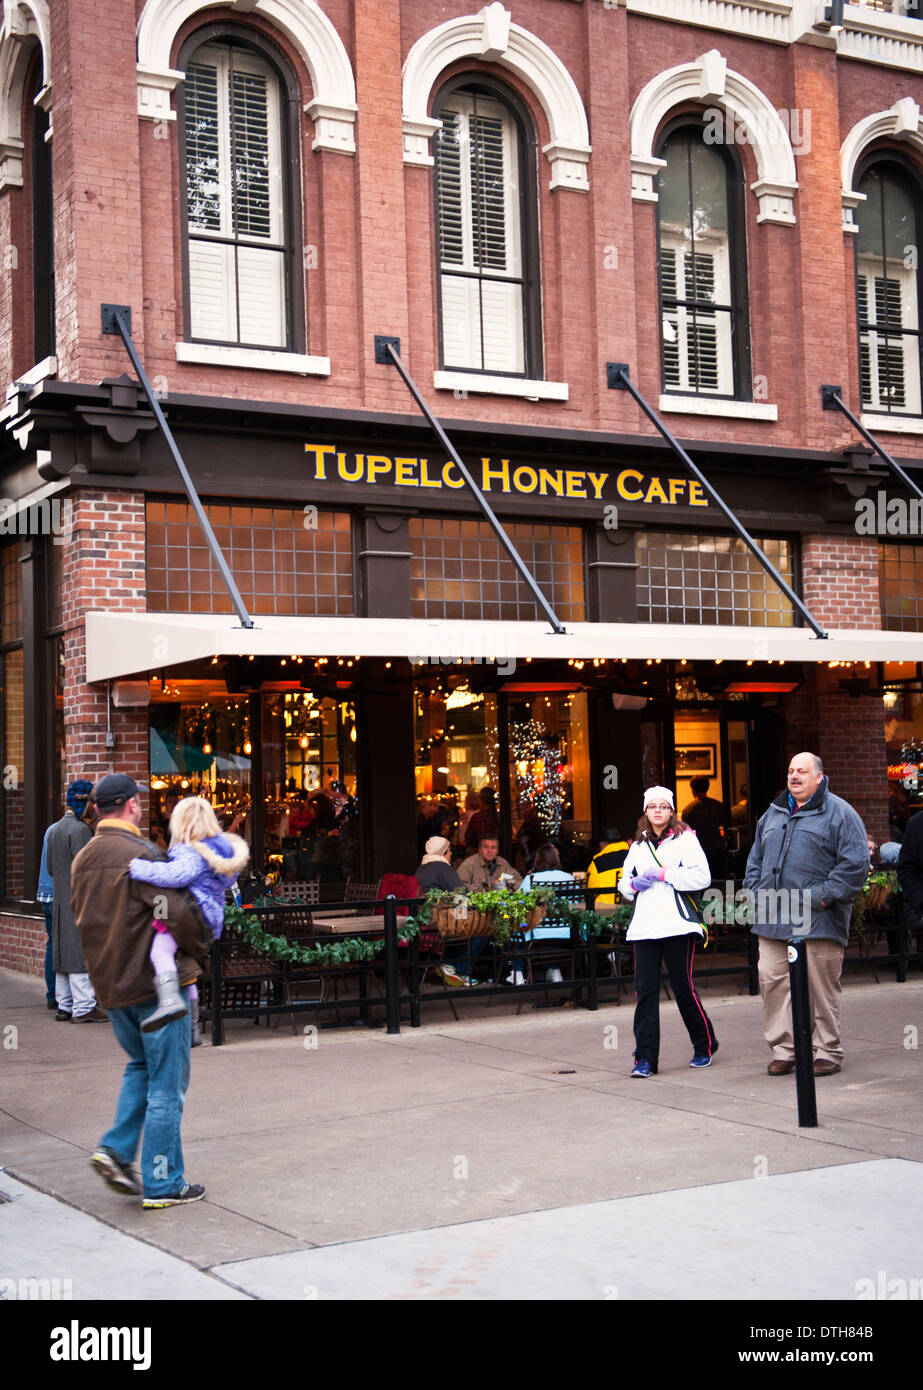 Tupelo Honey Café in Knoxville Tennessee,  1 Market Square. Knoxville, TN 37902 - Stock Image